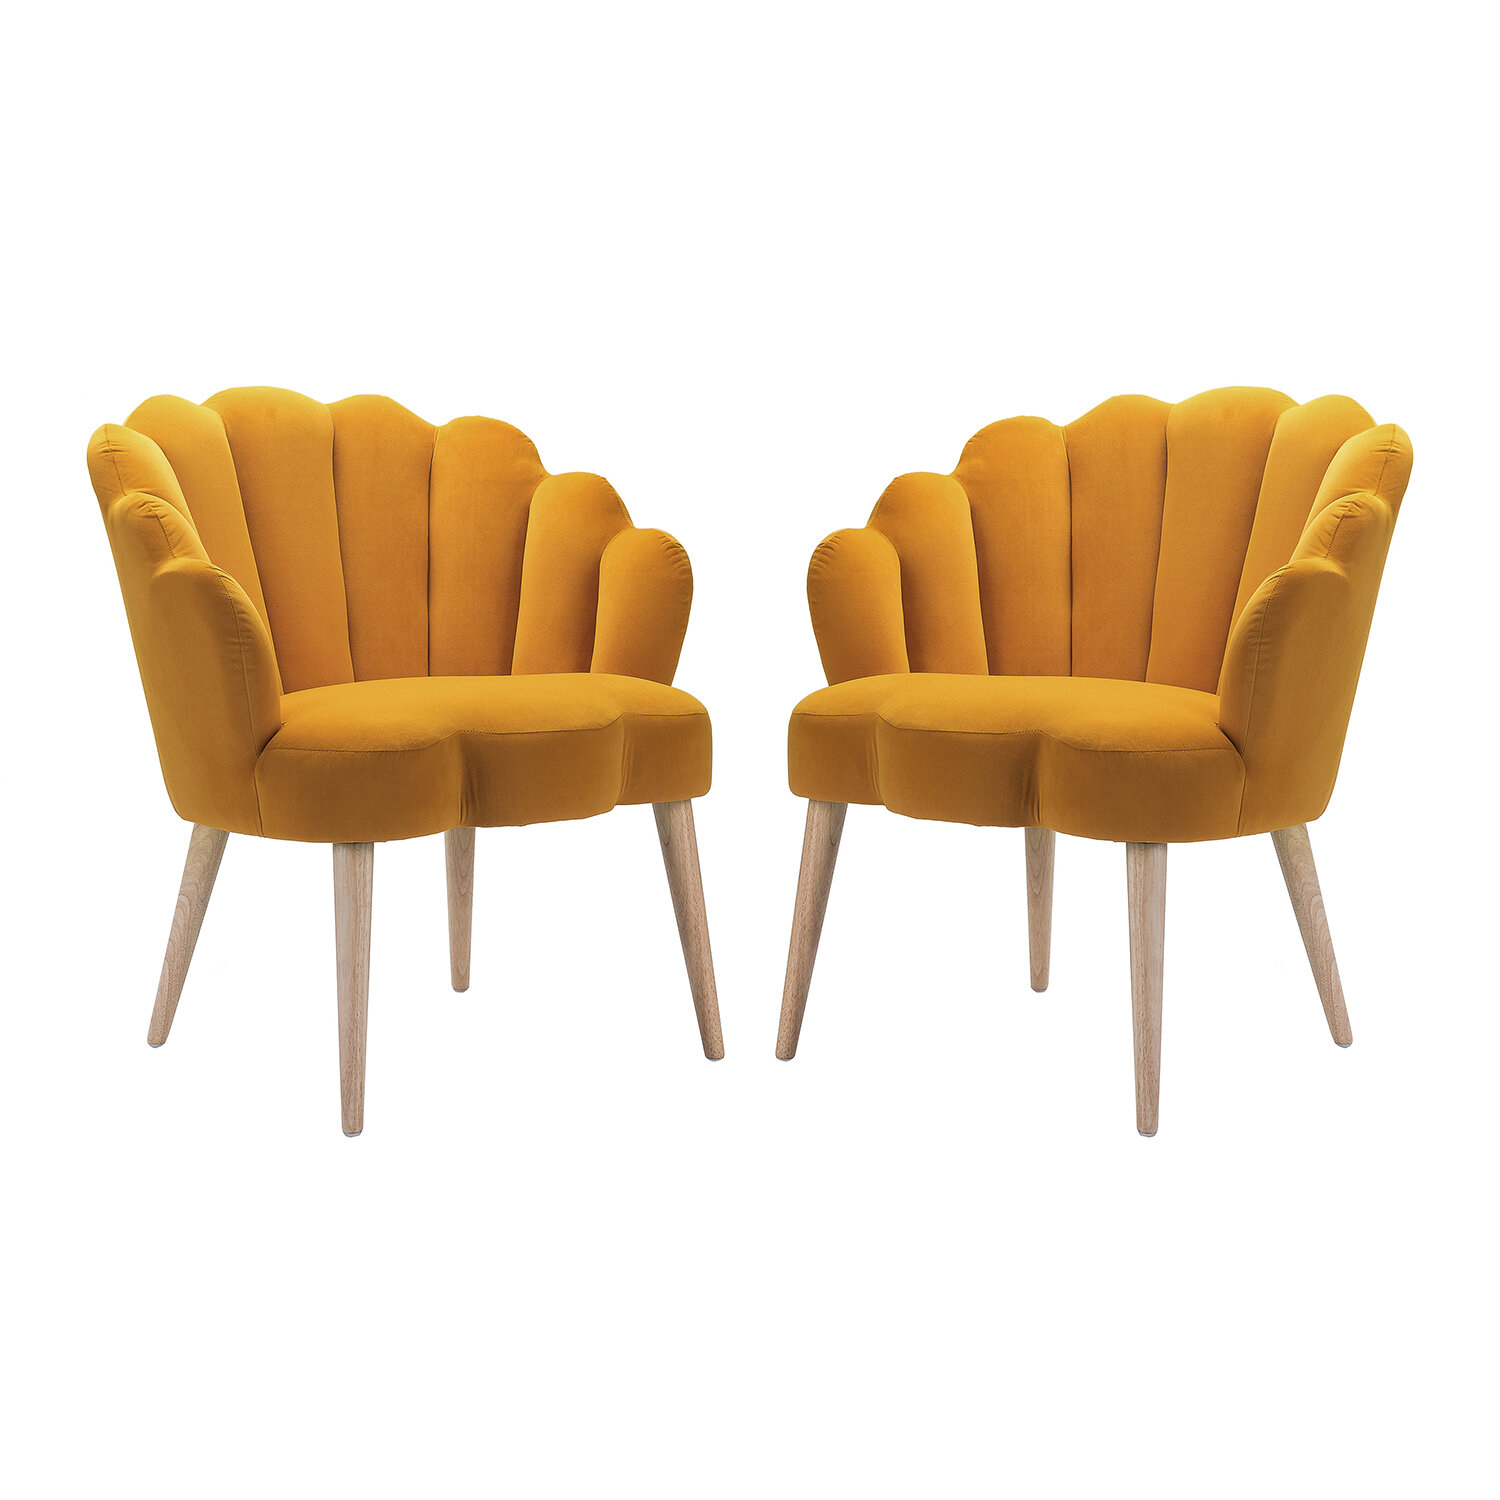 Barrel Yellow Accent Chairs You'Ll Love In 2021 | Wayfair With Regard To Dorcaster Barrel Chairs (View 3 of 15)